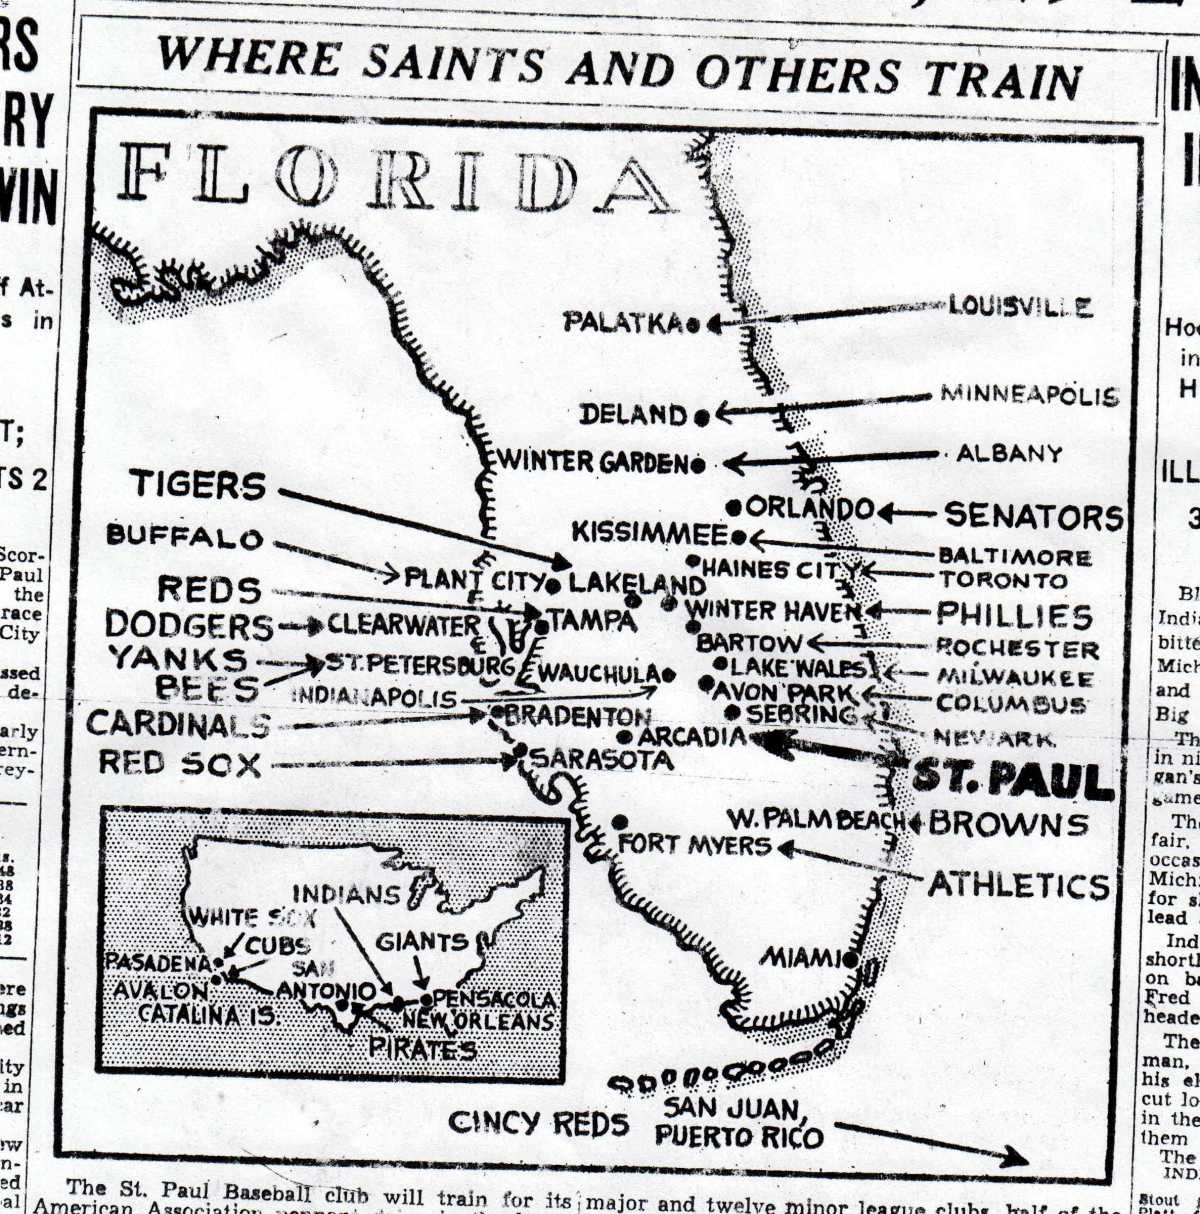 From Palatka, Florida, to San Juan, Puerto Rico: where the boys of summer used to spend theirsprings.